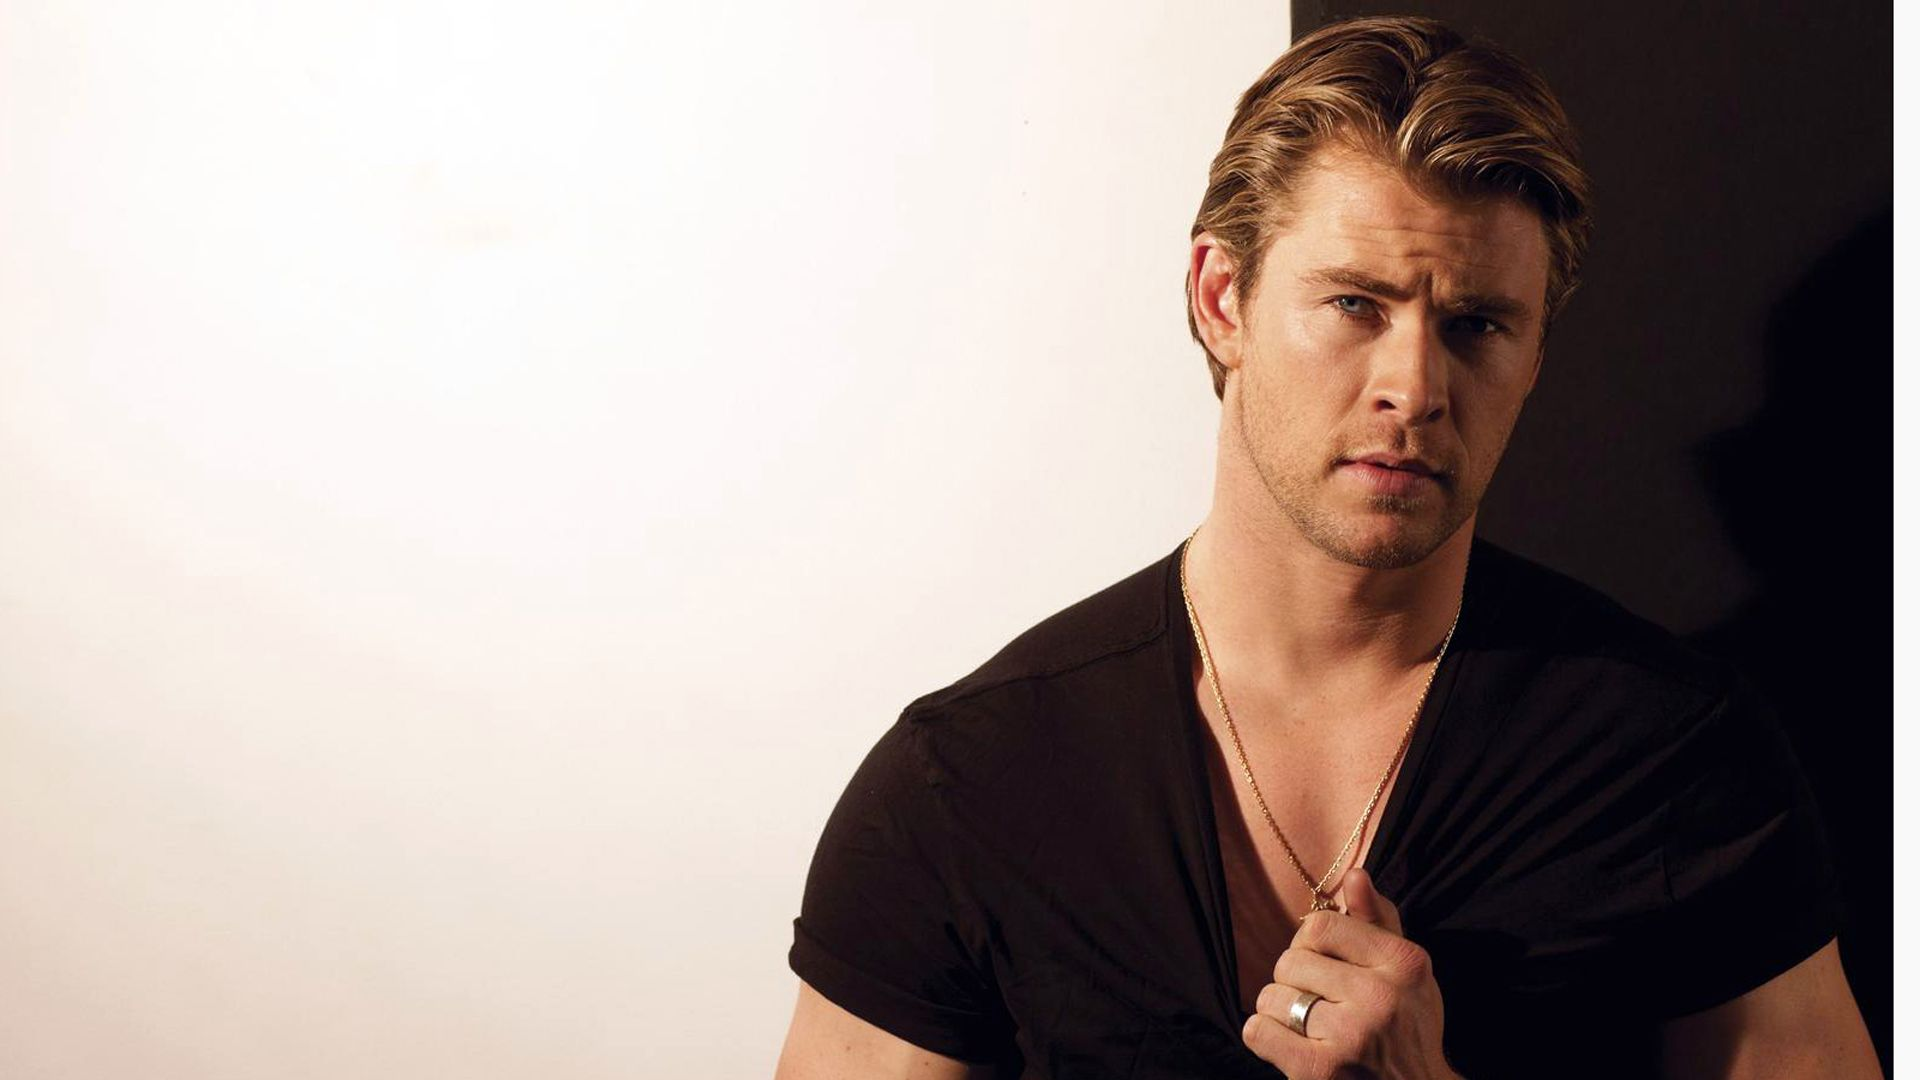 Chris Hemsworth Backgrounds (43 Wallpapers) – Adorable Wallpapers